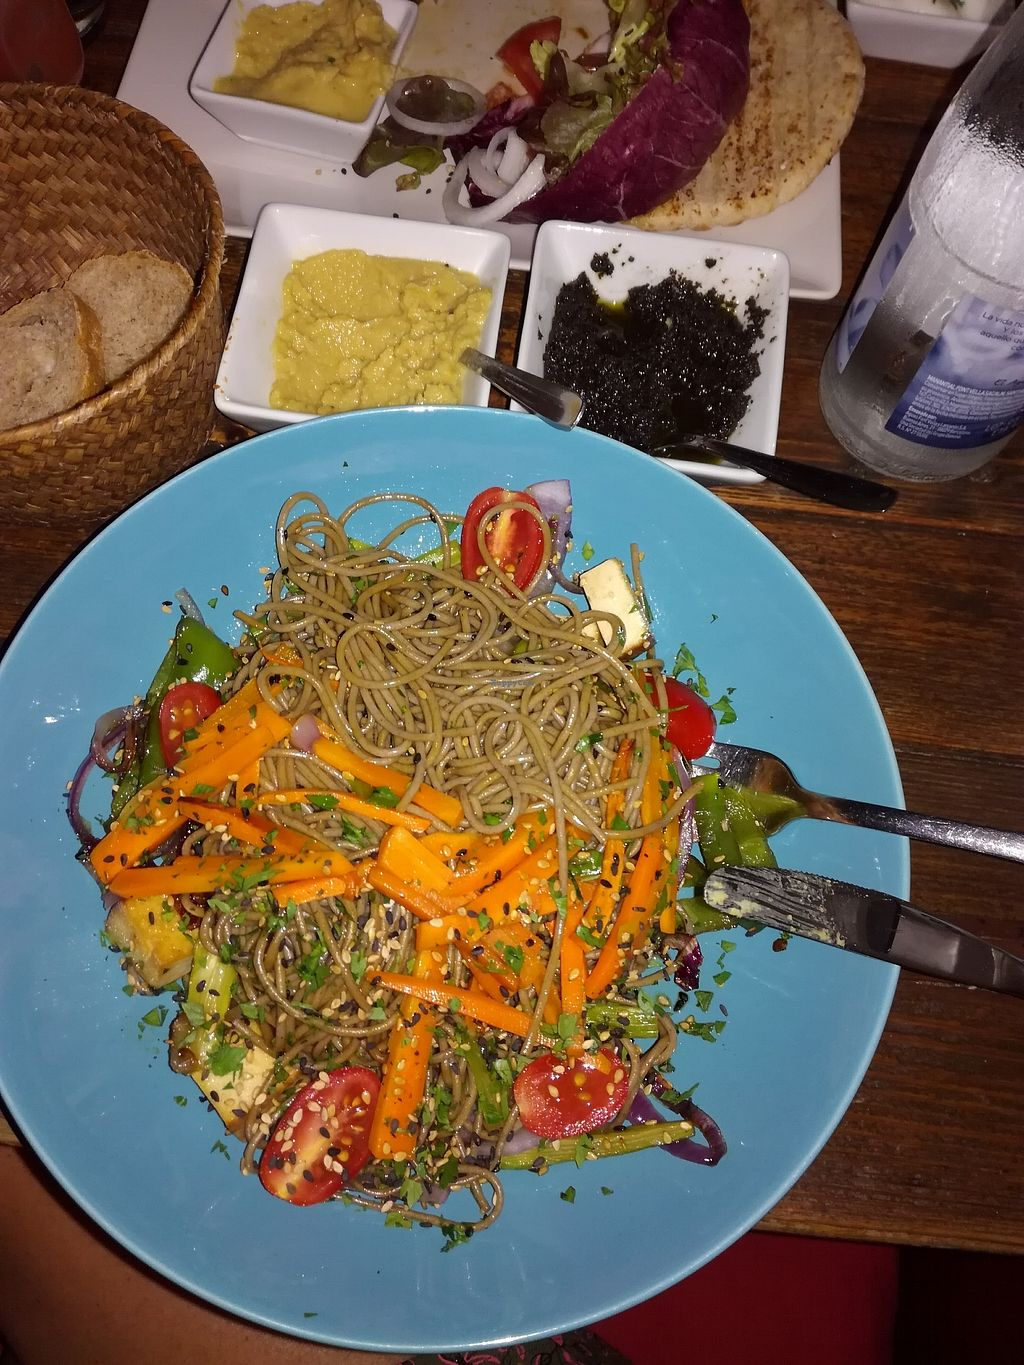 """Photo of Integral  by <a href=""""/members/profile/AmandaHibbitt-Gr%C3%A4ff"""">AmandaHibbitt-Gräff</a> <br/>The soba dish from the specials board <br/> August 23, 2017  - <a href='/contact/abuse/image/91857/296142'>Report</a>"""